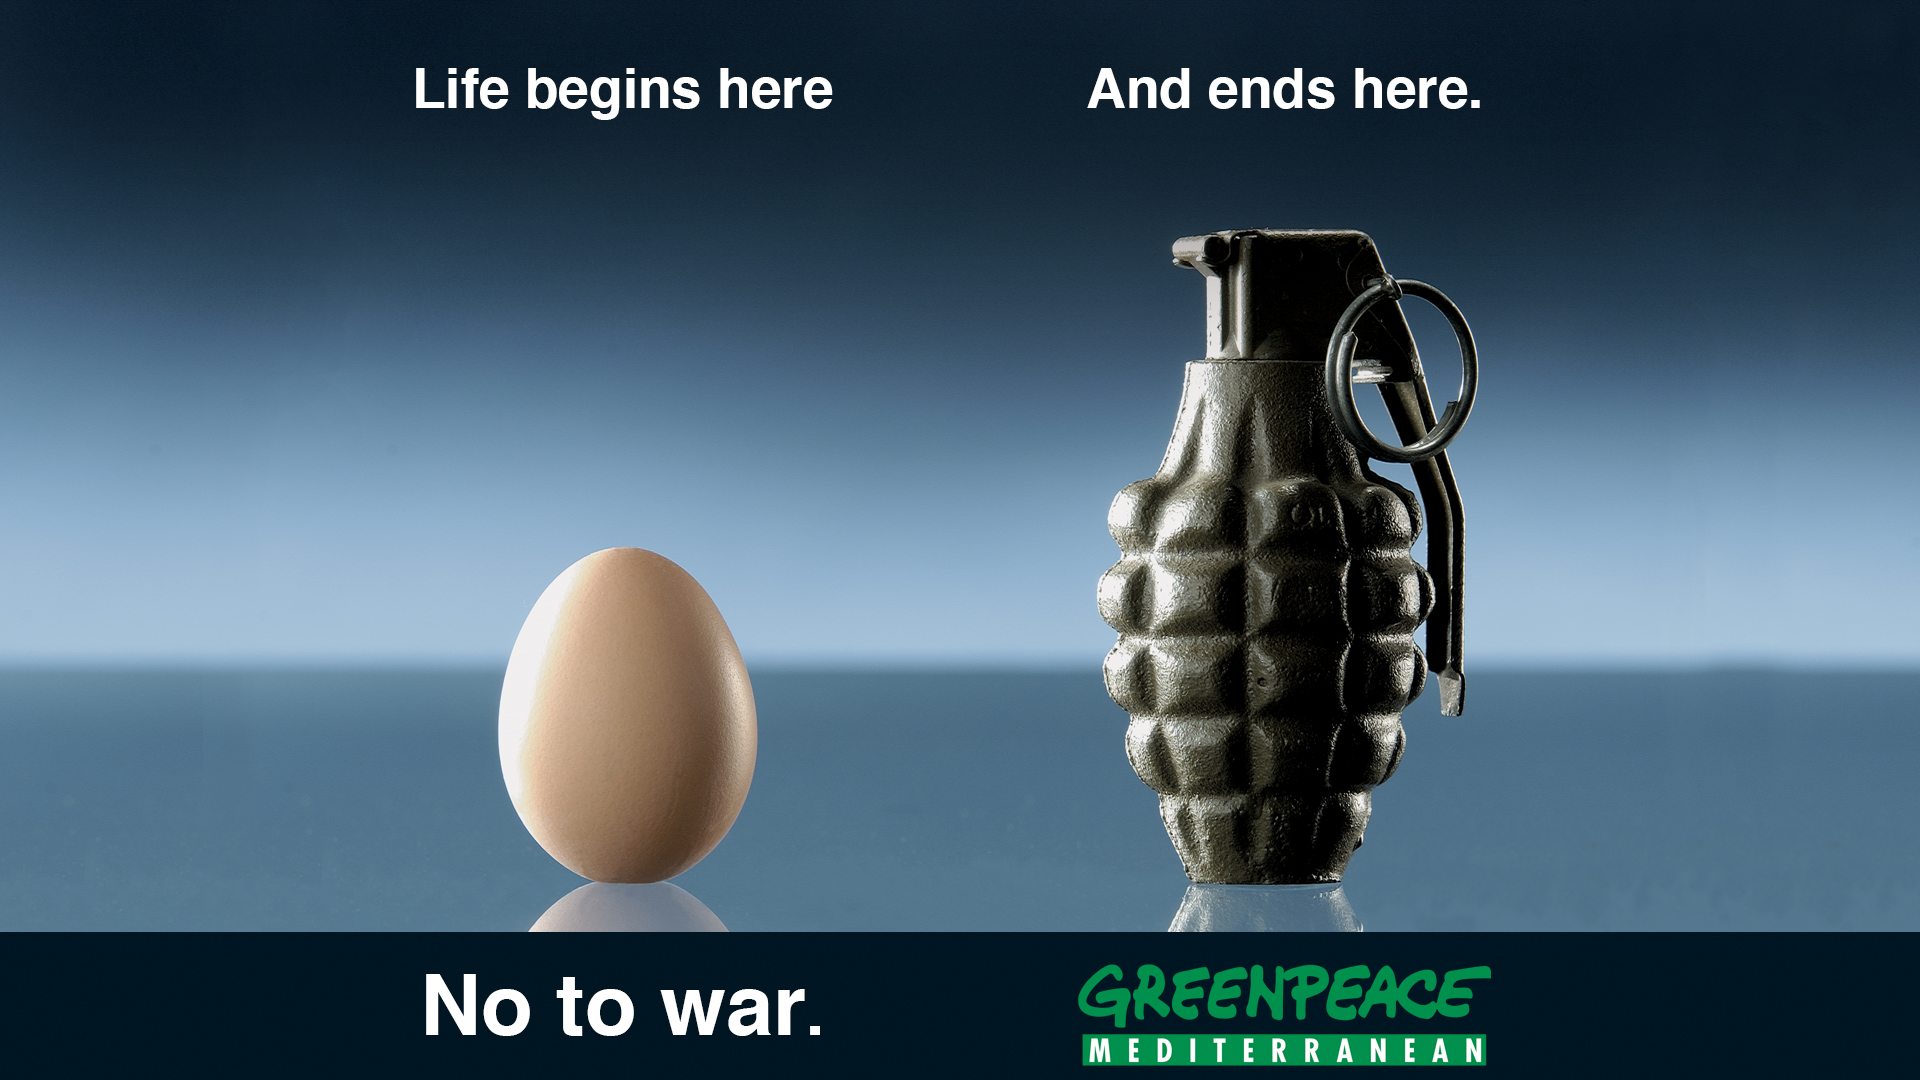 Greenpeace No To War Campaign English Big Idea Branding